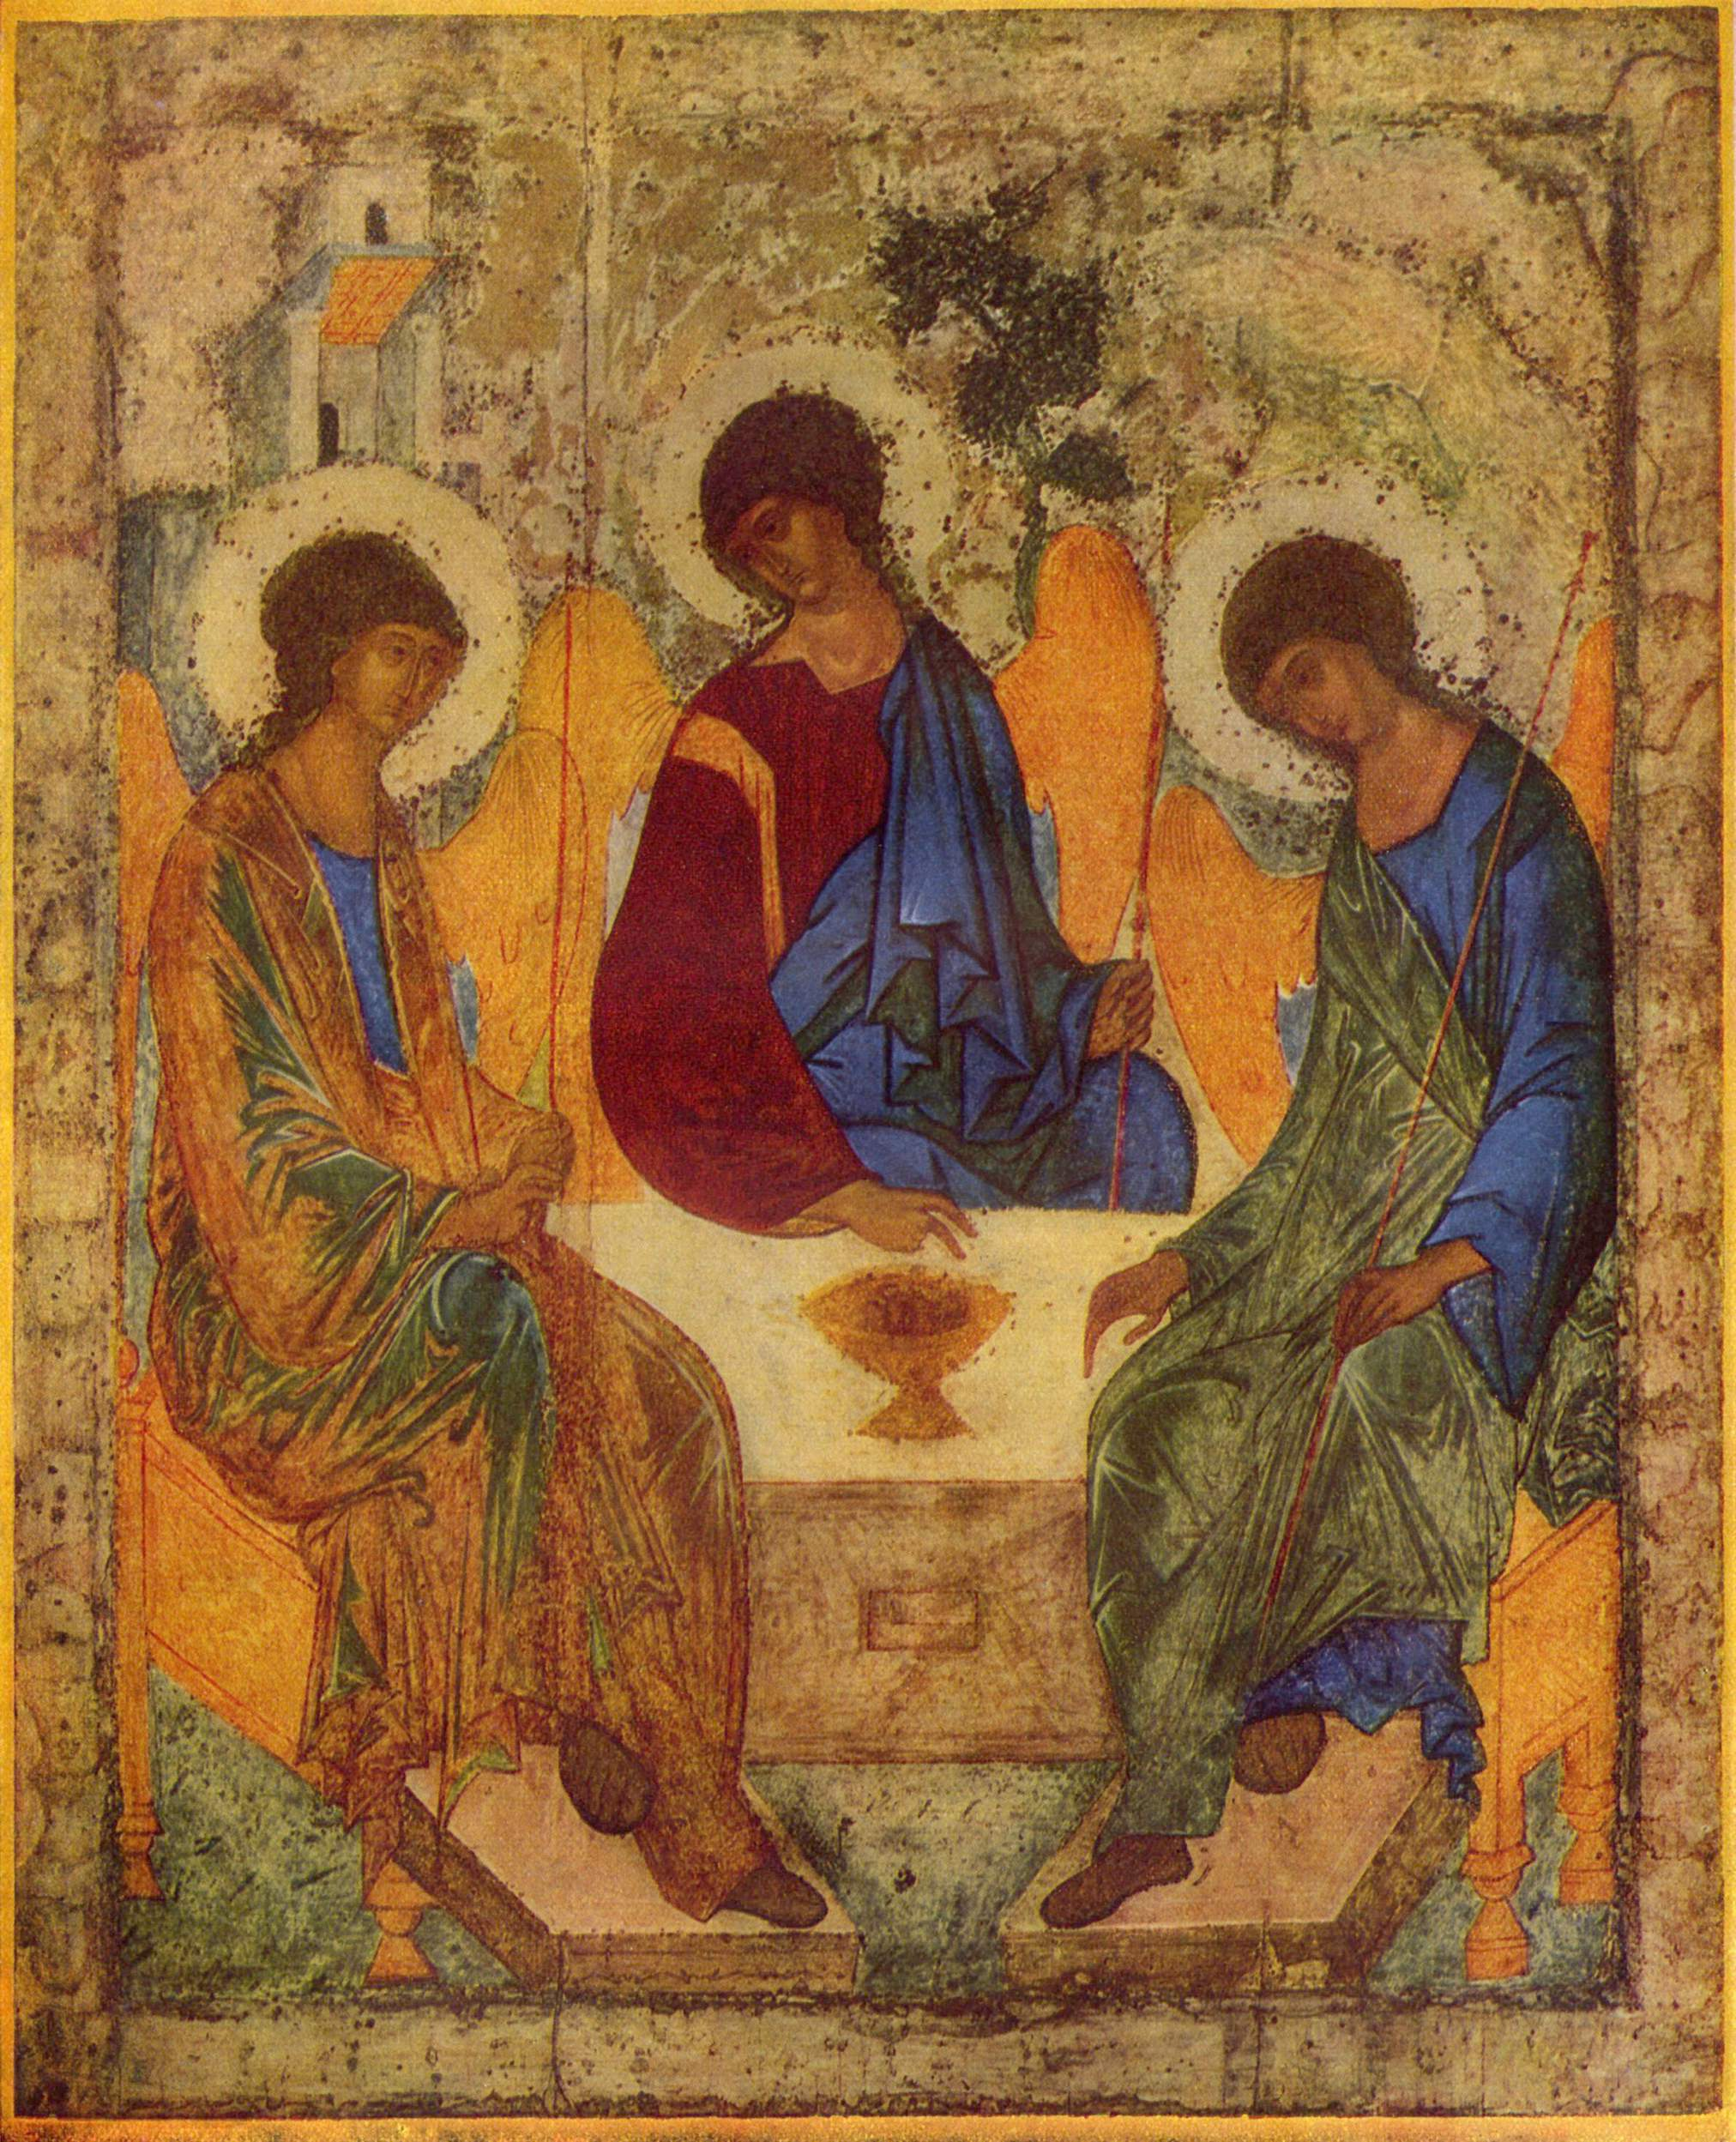 Icon of the Holy Trinity, the main character(s) in Christian theology